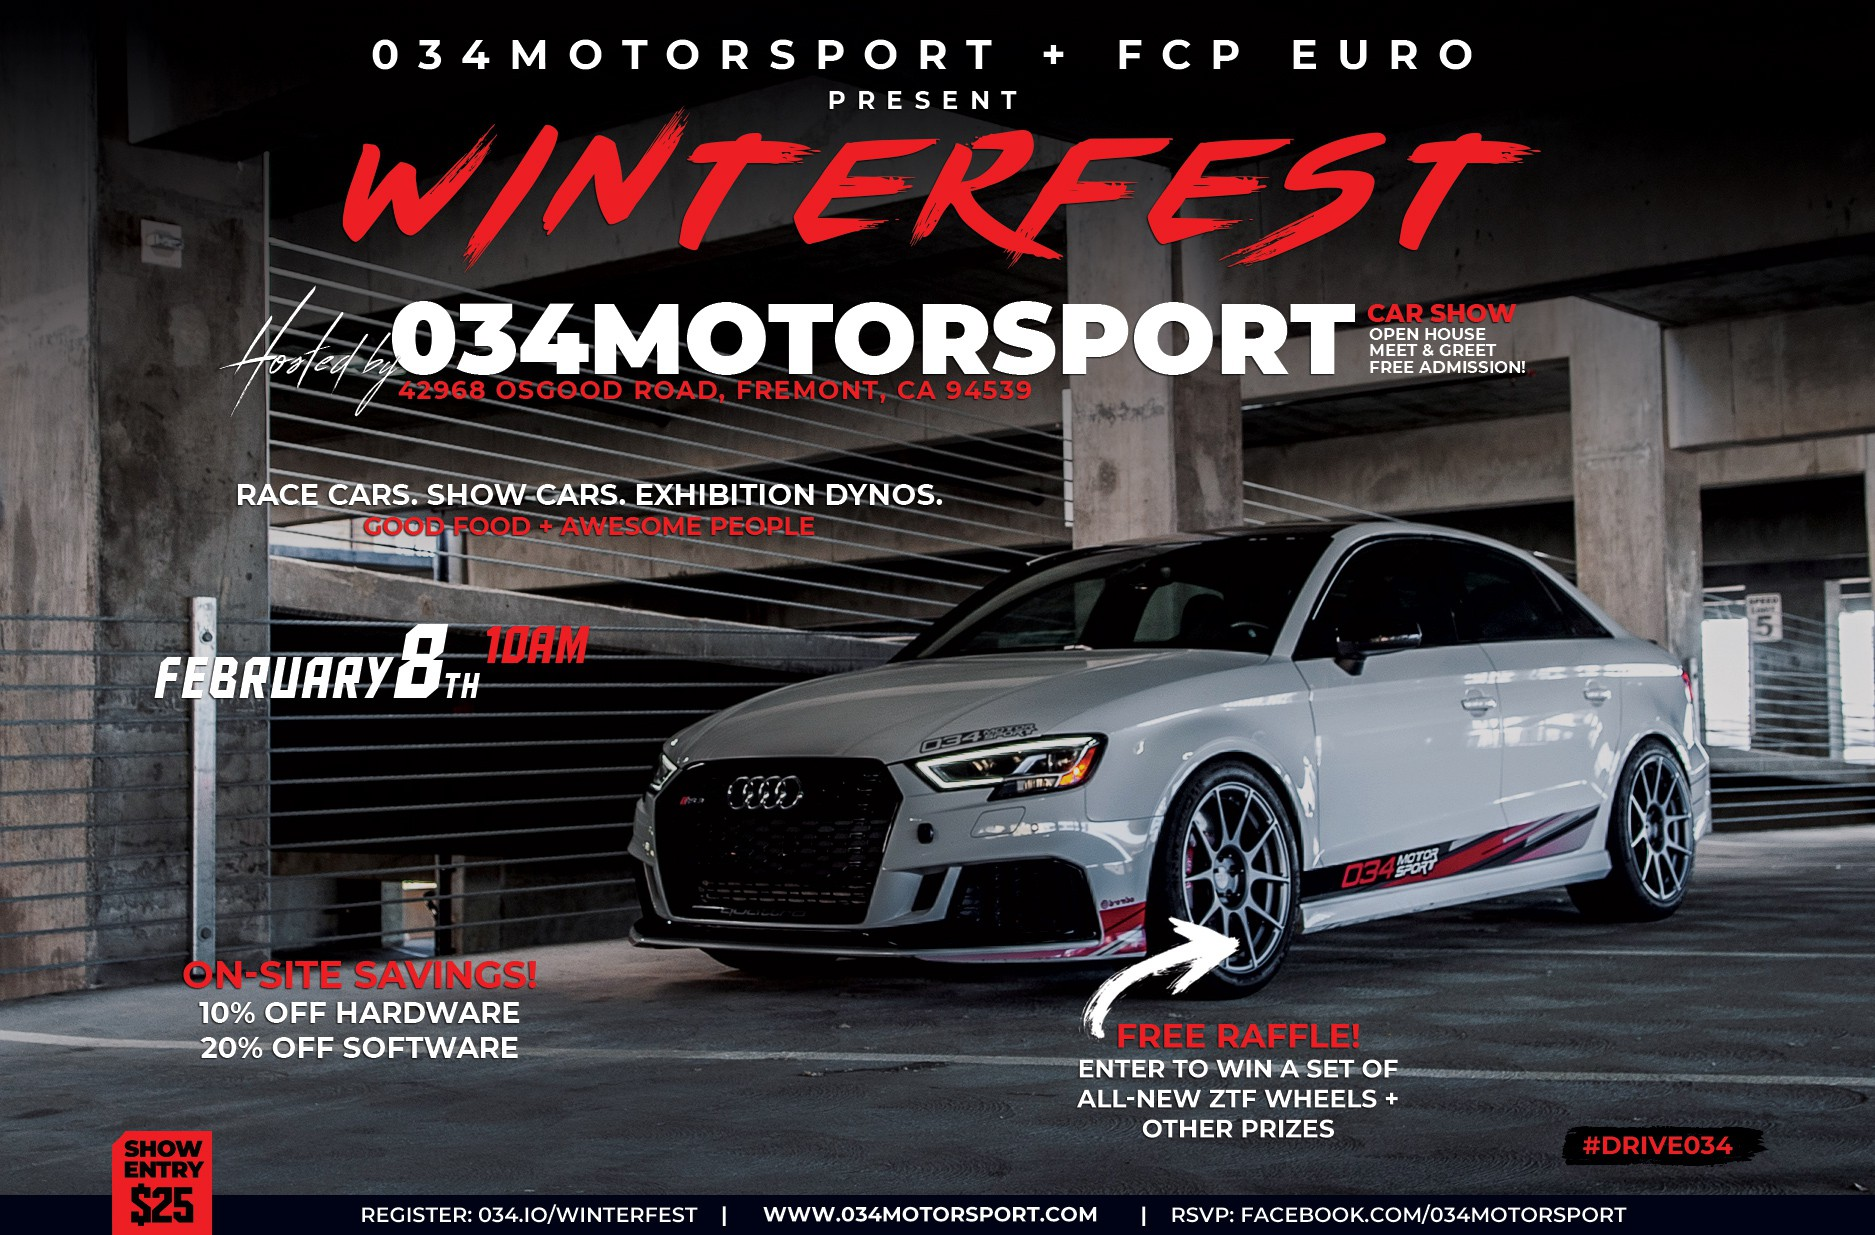 WinterFest Car Show & Open House at 034Motorsport | February 8th, 2020 - 10 AM to 3 PM